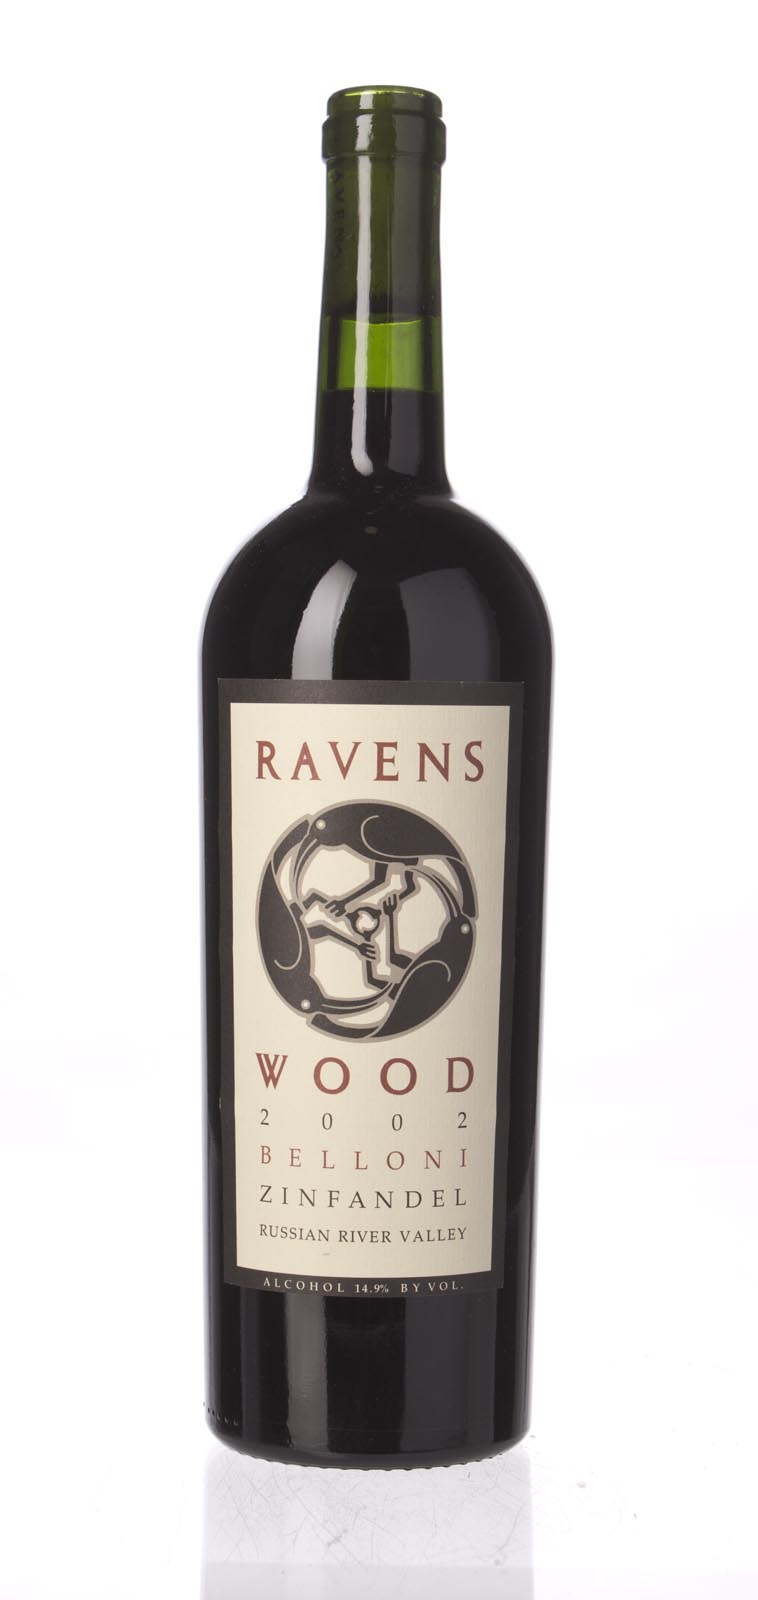 Ravenswood Zinfandel Wood Road Belloni 2002, 750ml (ST90-92) from The BPW - Merchants of rare and fine wines.